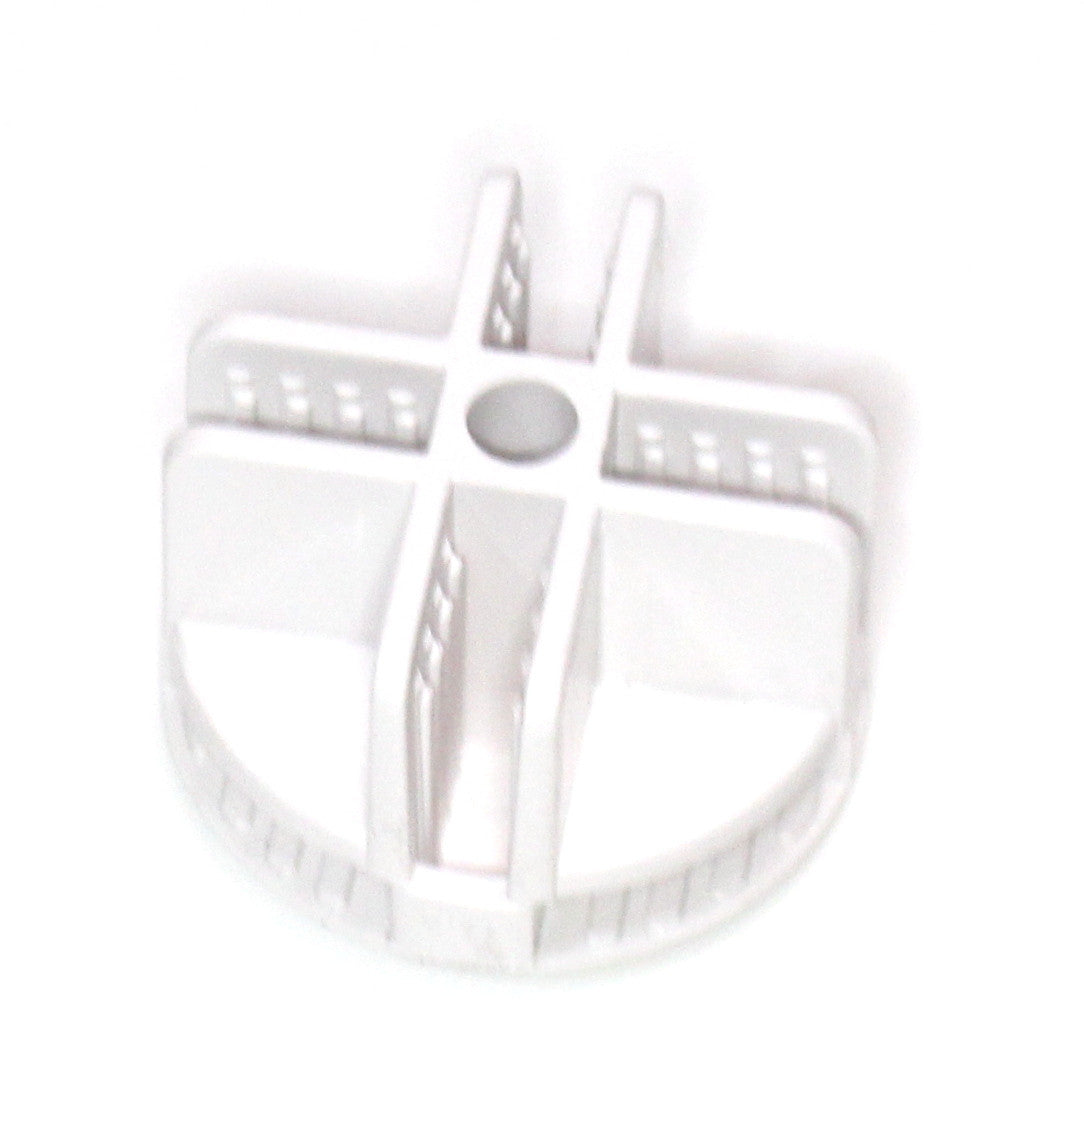 White Wire Cube Plastic Connectors snap mesh organizer grid Curved ...